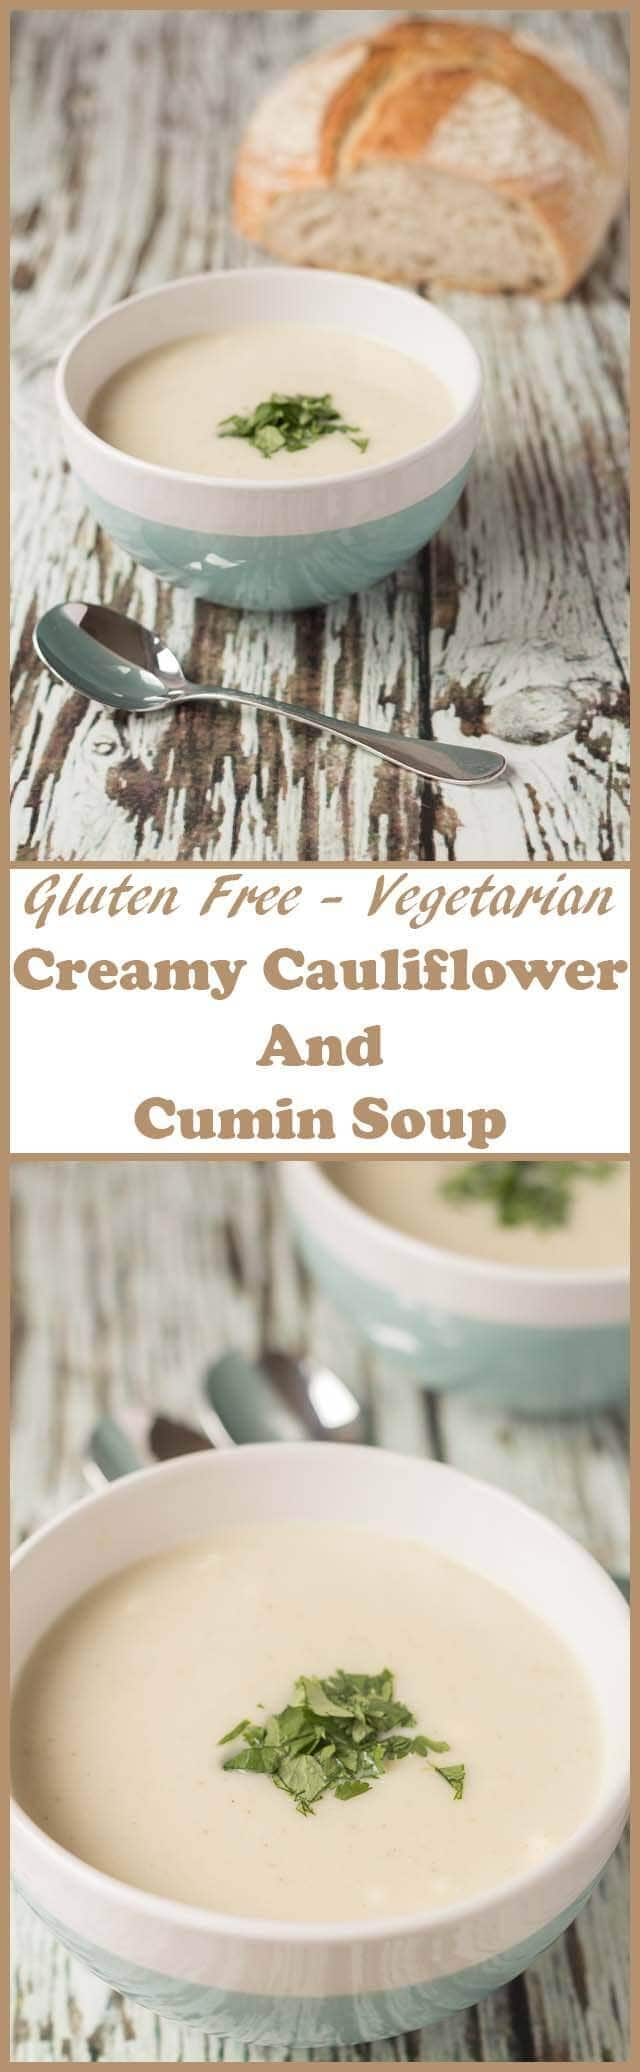 Creamy cauliflower and cumin soupis a quick and easy delicious soup. It's the perfect go-to winter comfort soup and ideal as a starter for a meal or on its own.